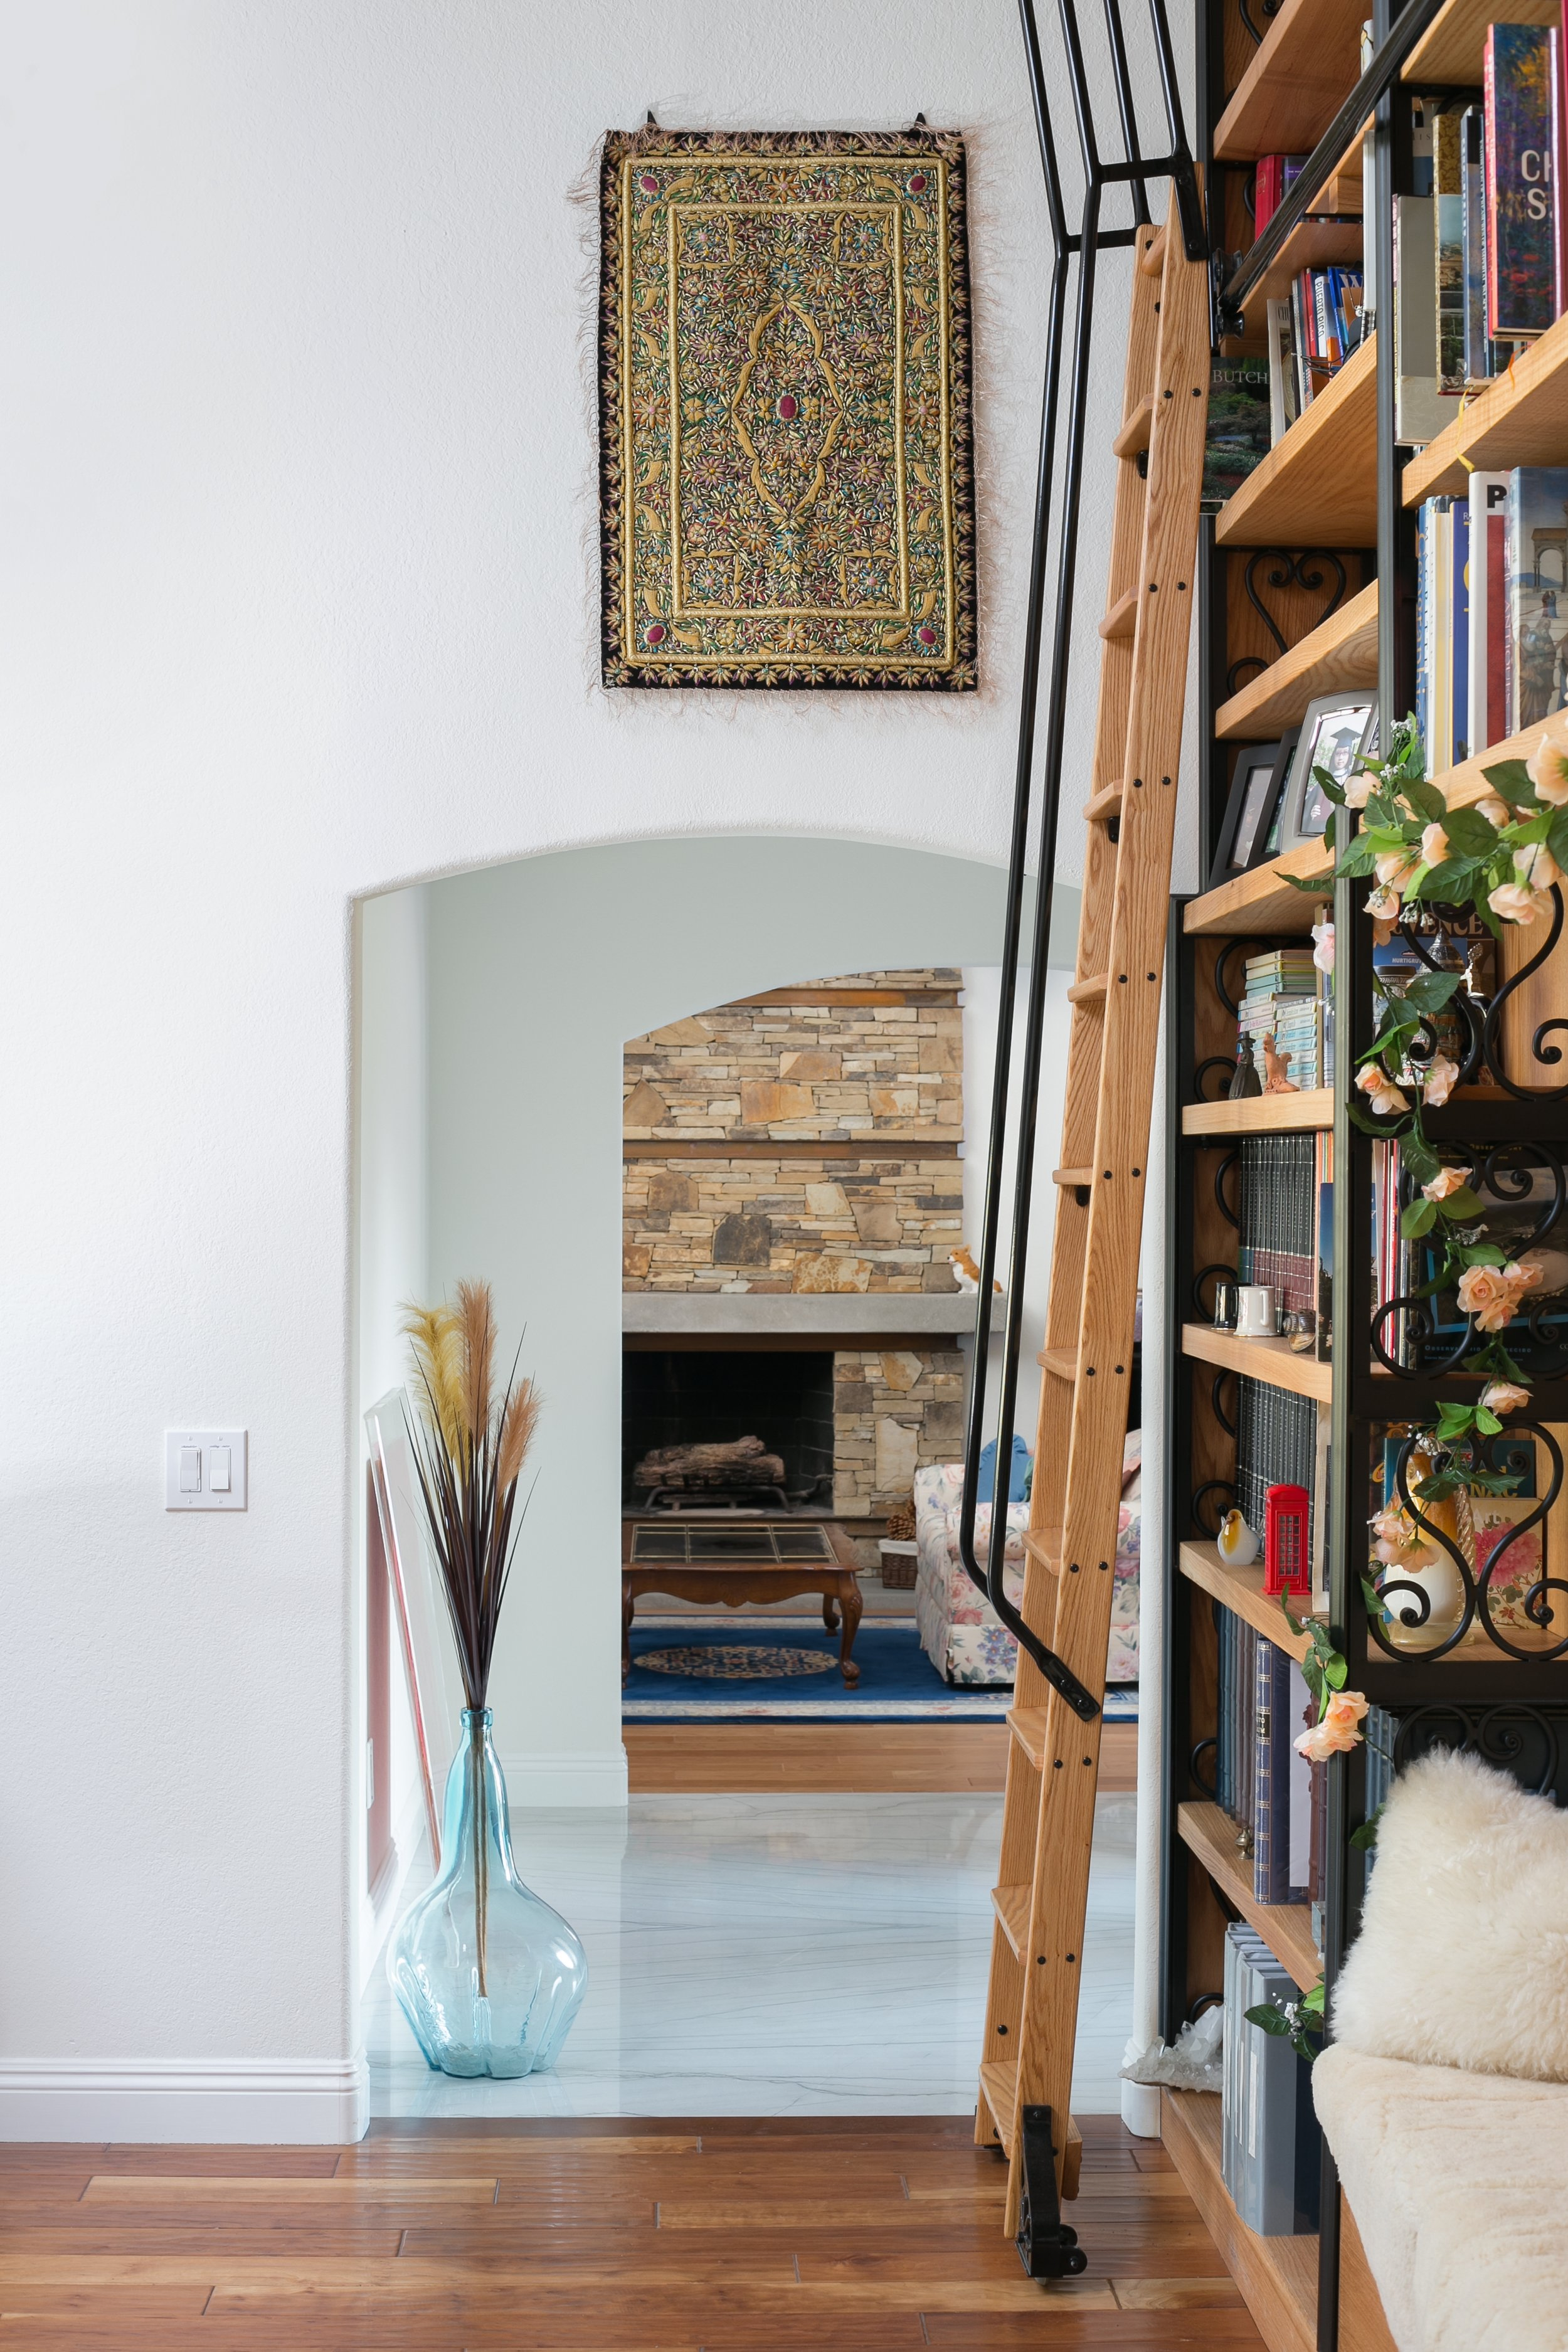 This full height custom-built library with oak bookshelves, a rolling ladder and wrought iron ornamental detail resonates perfectly with the front entry and fireplace